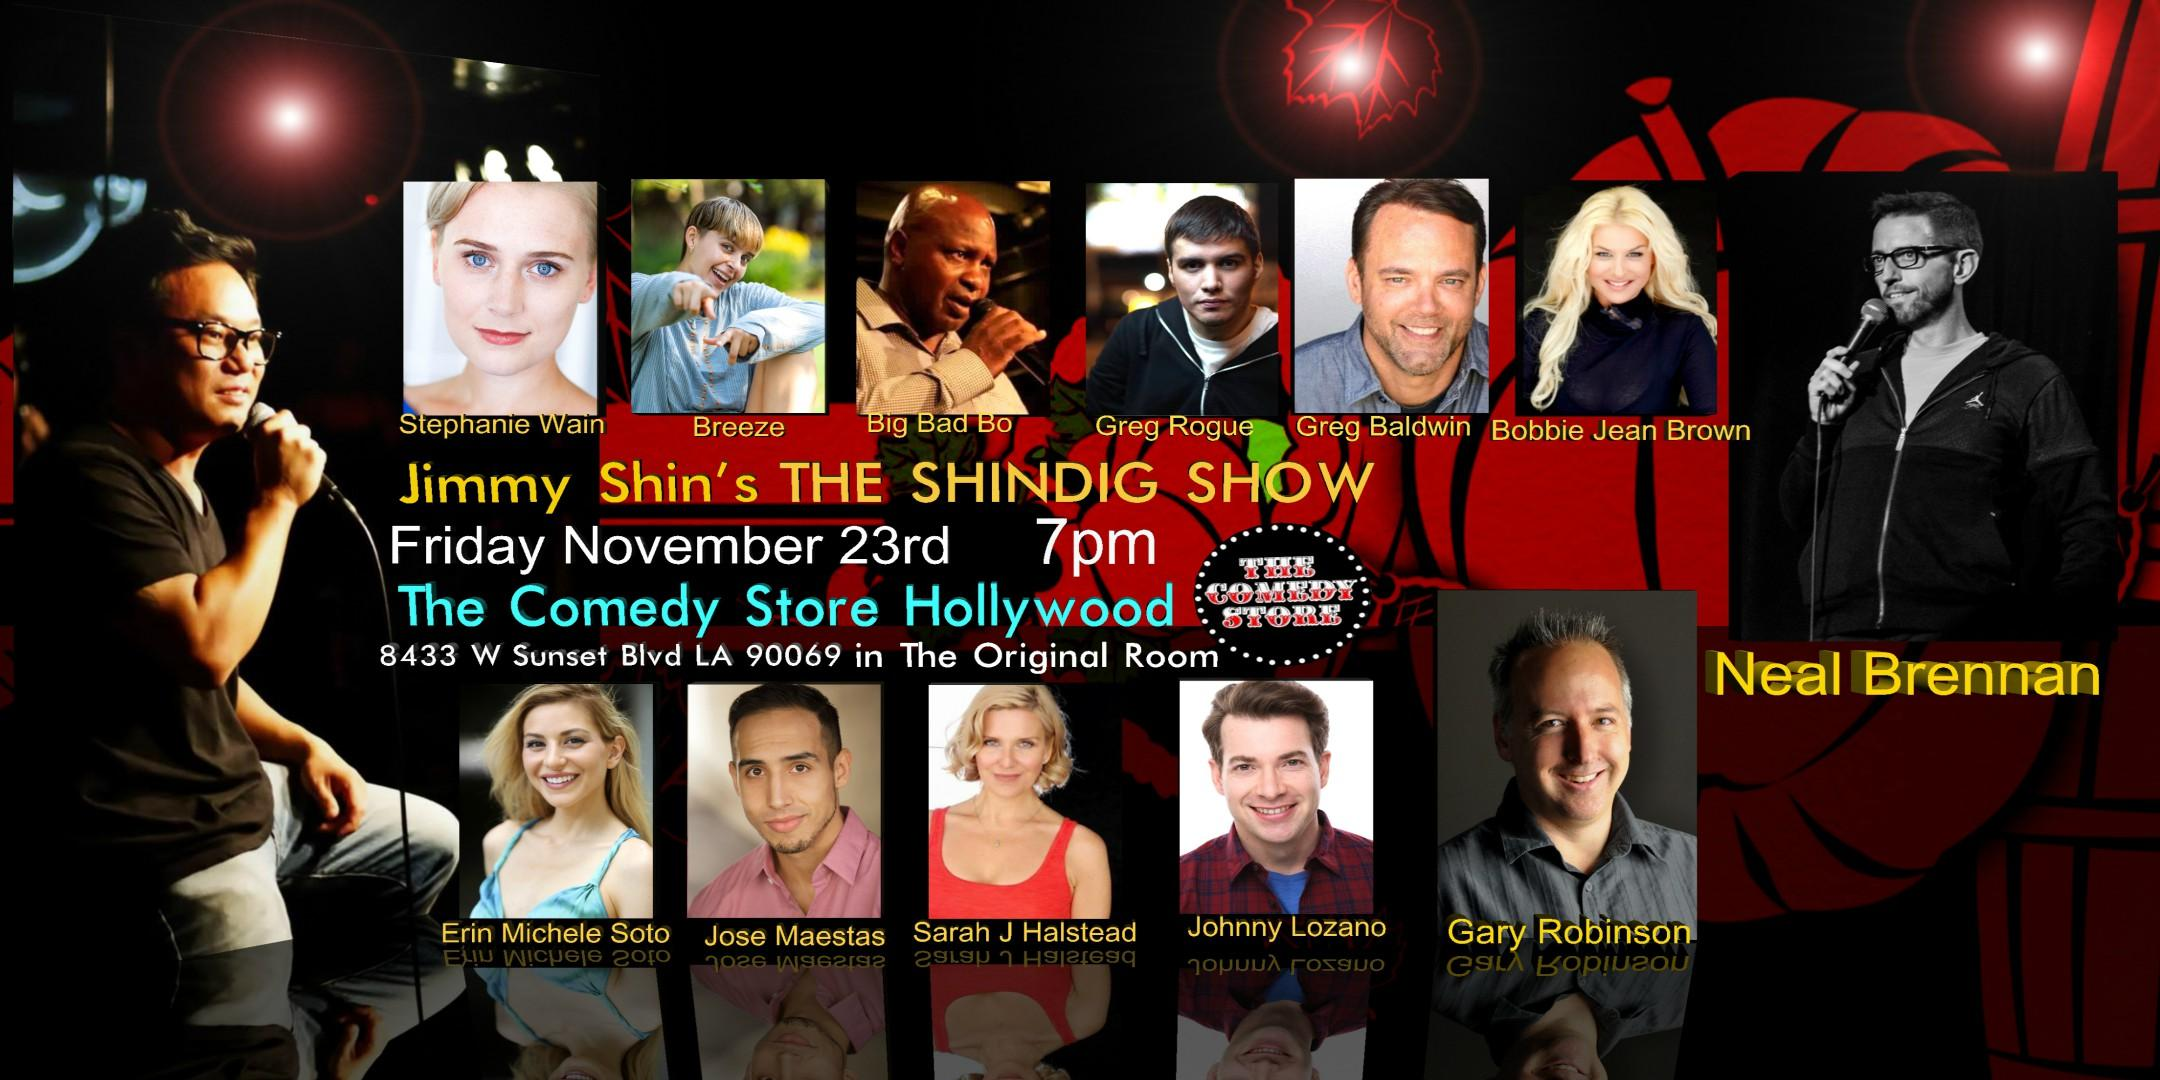 The Holiday Shindig Show with Neal Brennan